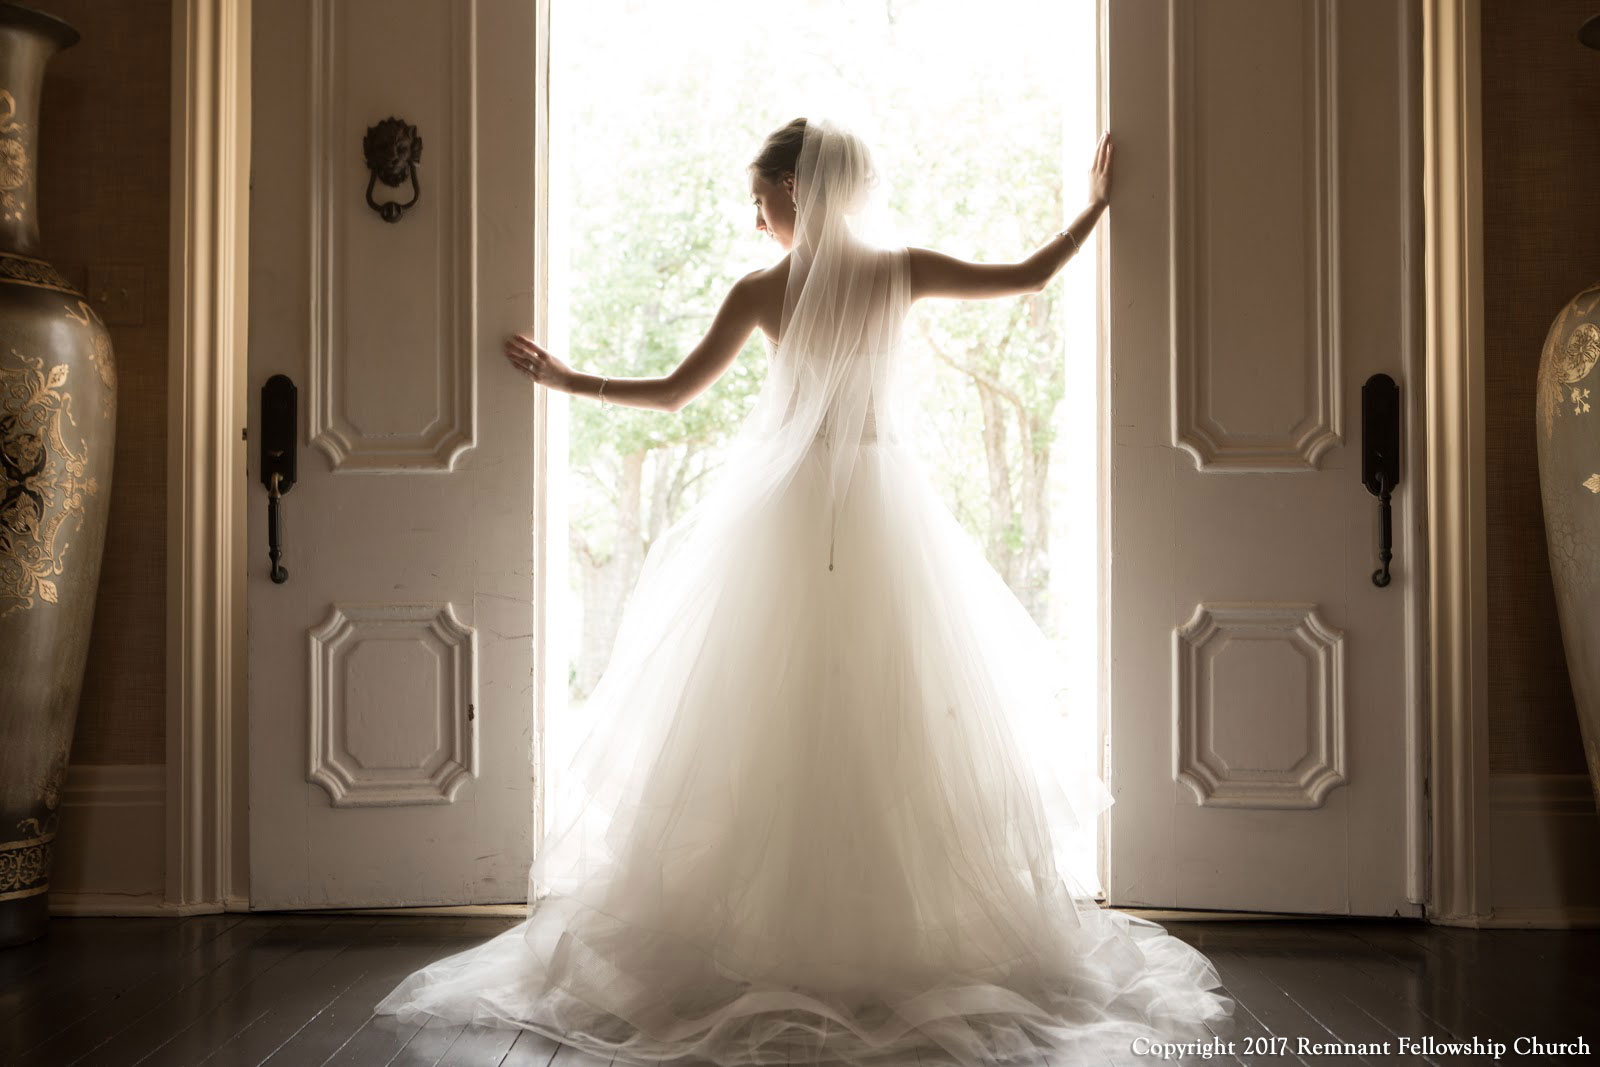 Auernheimer-Campbell-Remnant-Fellowship-Covenant-Wedding-Bride-Dress